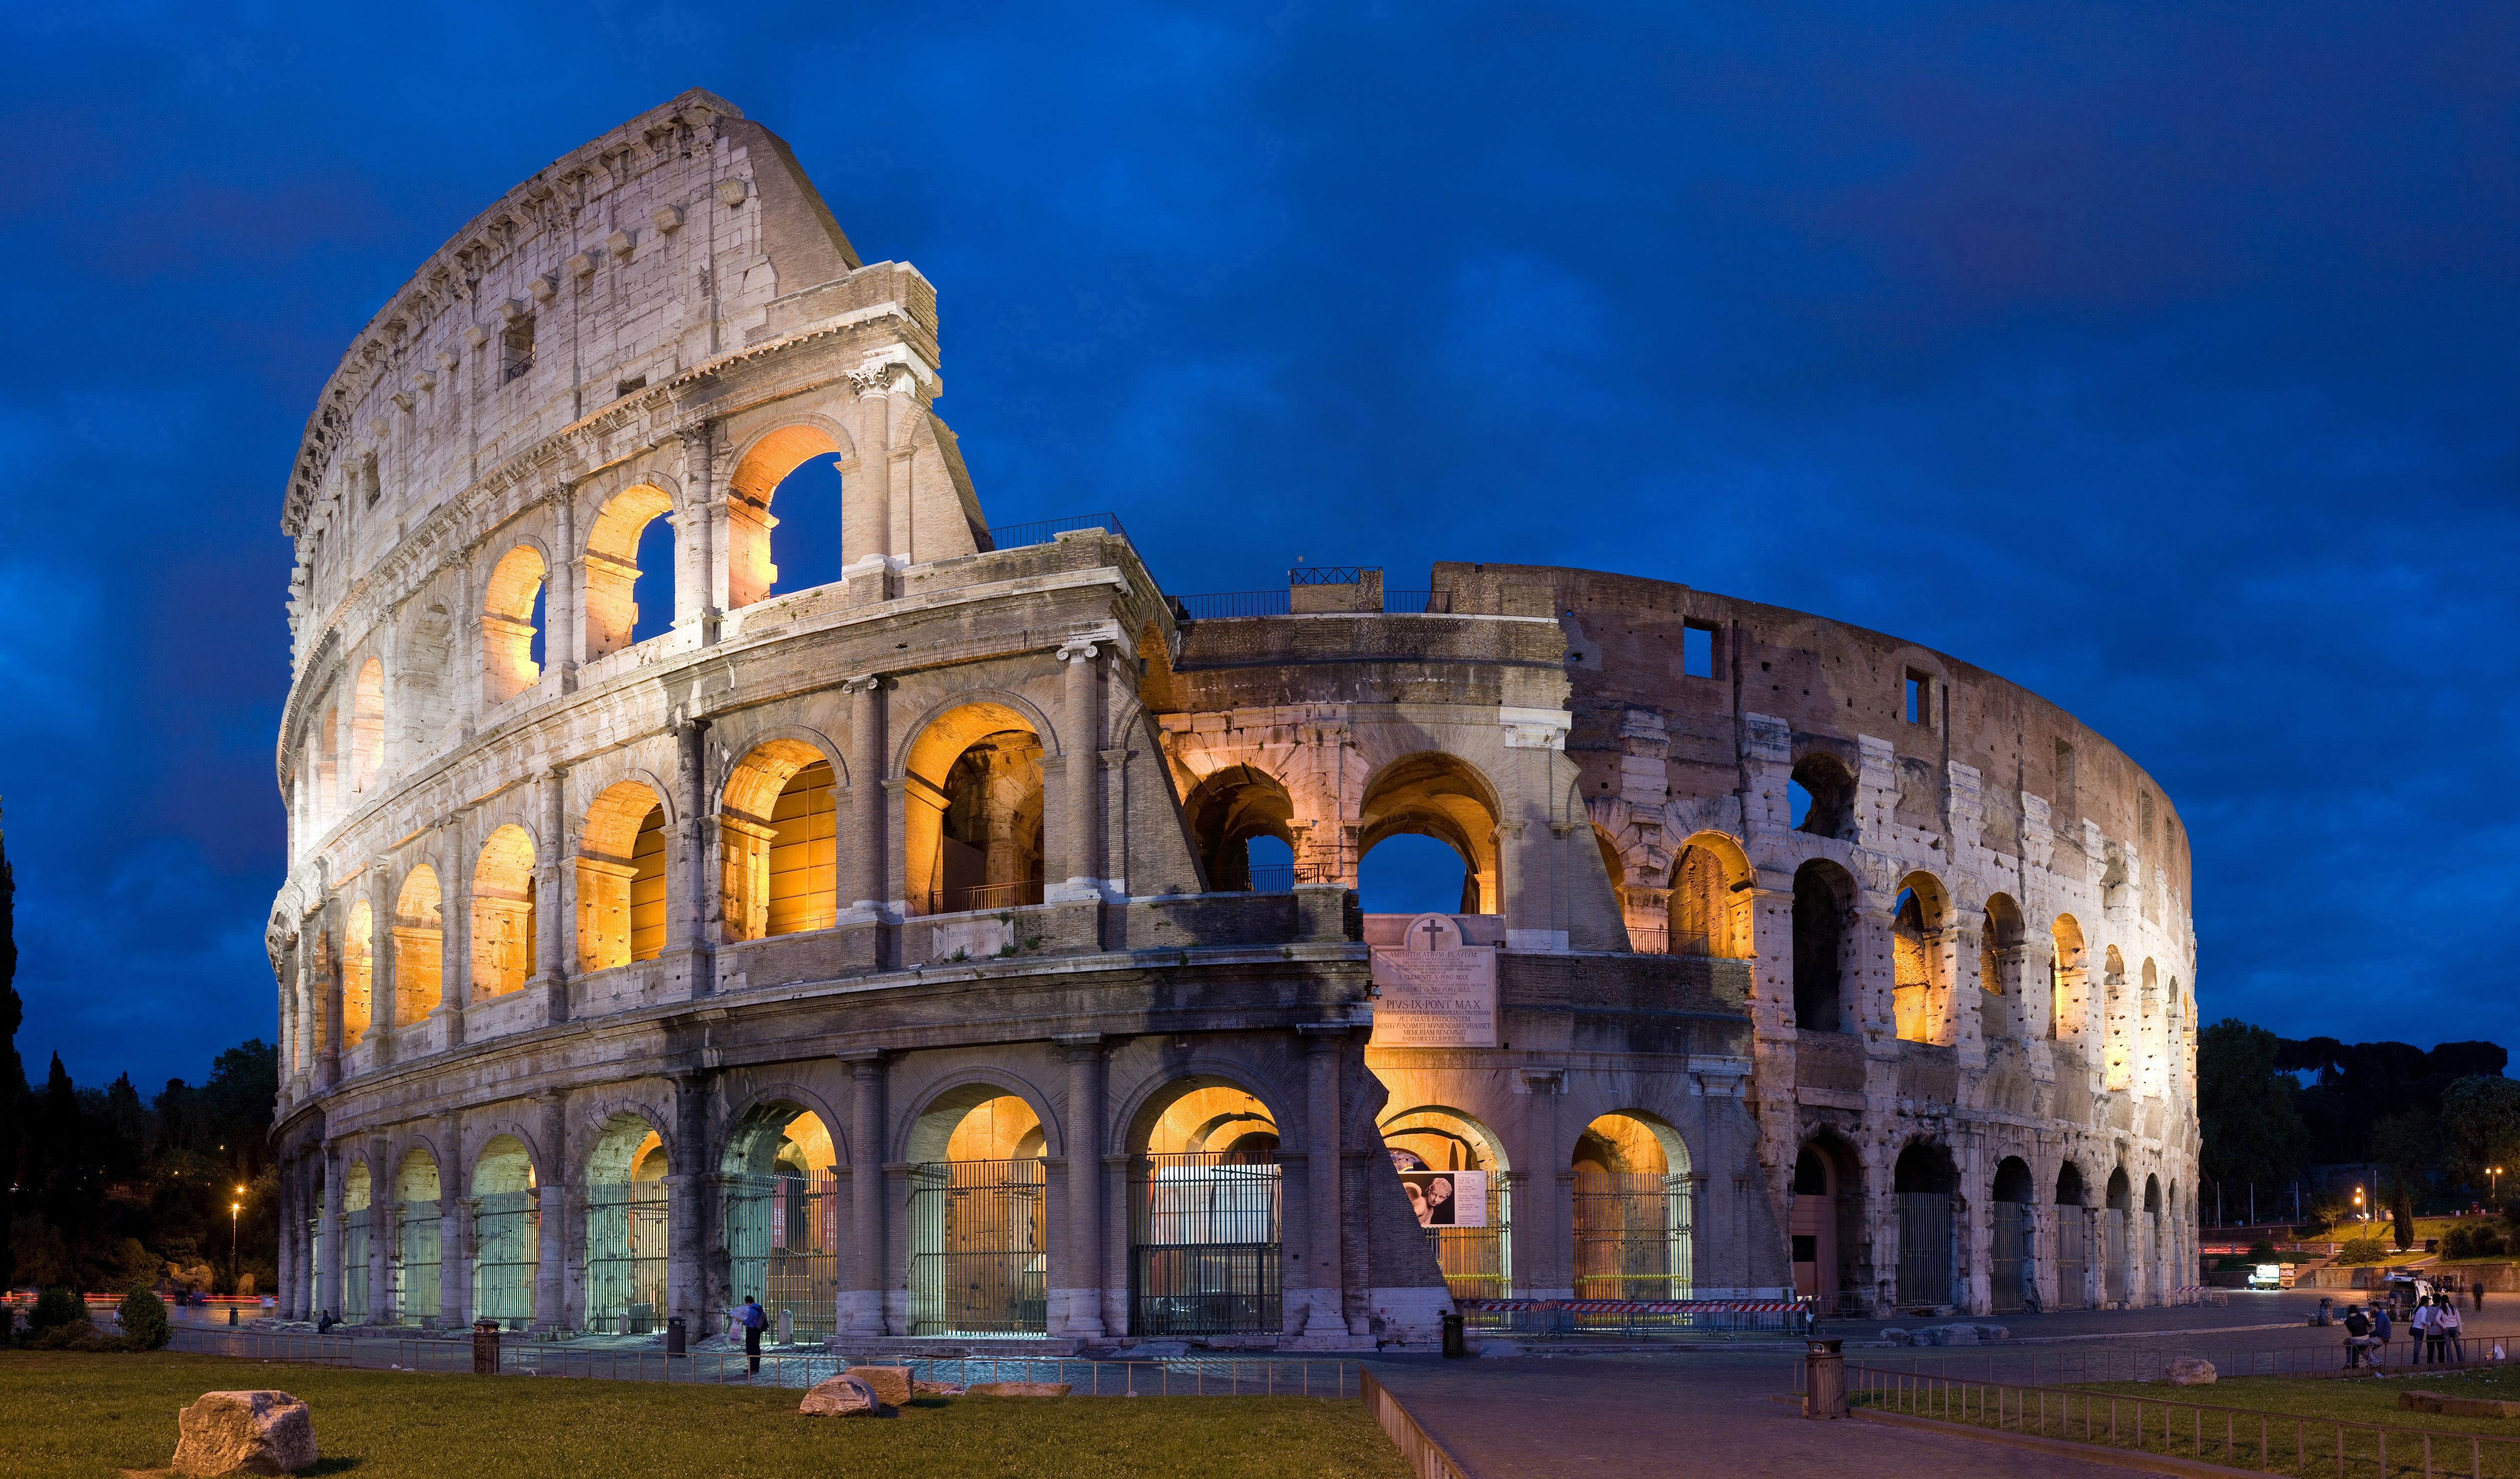 3 Colosseum Rome Italy 3 Places To Travel Visit Italy